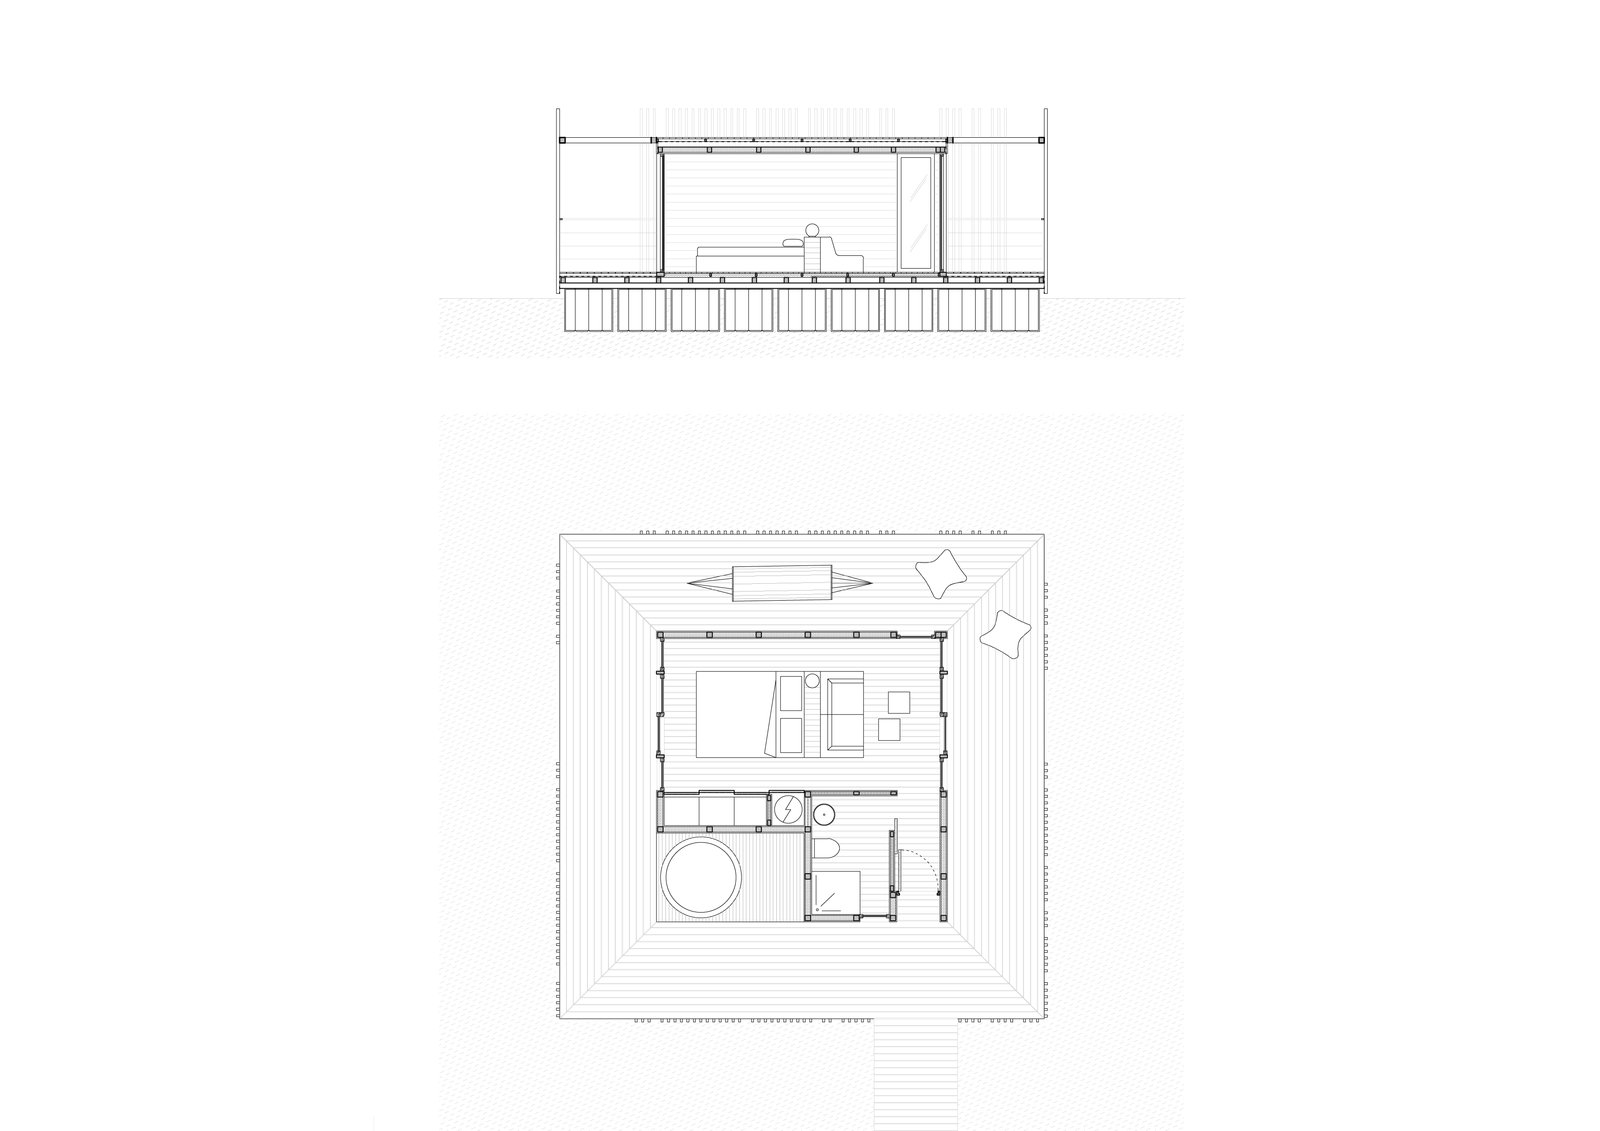 Plans for one of the suites.